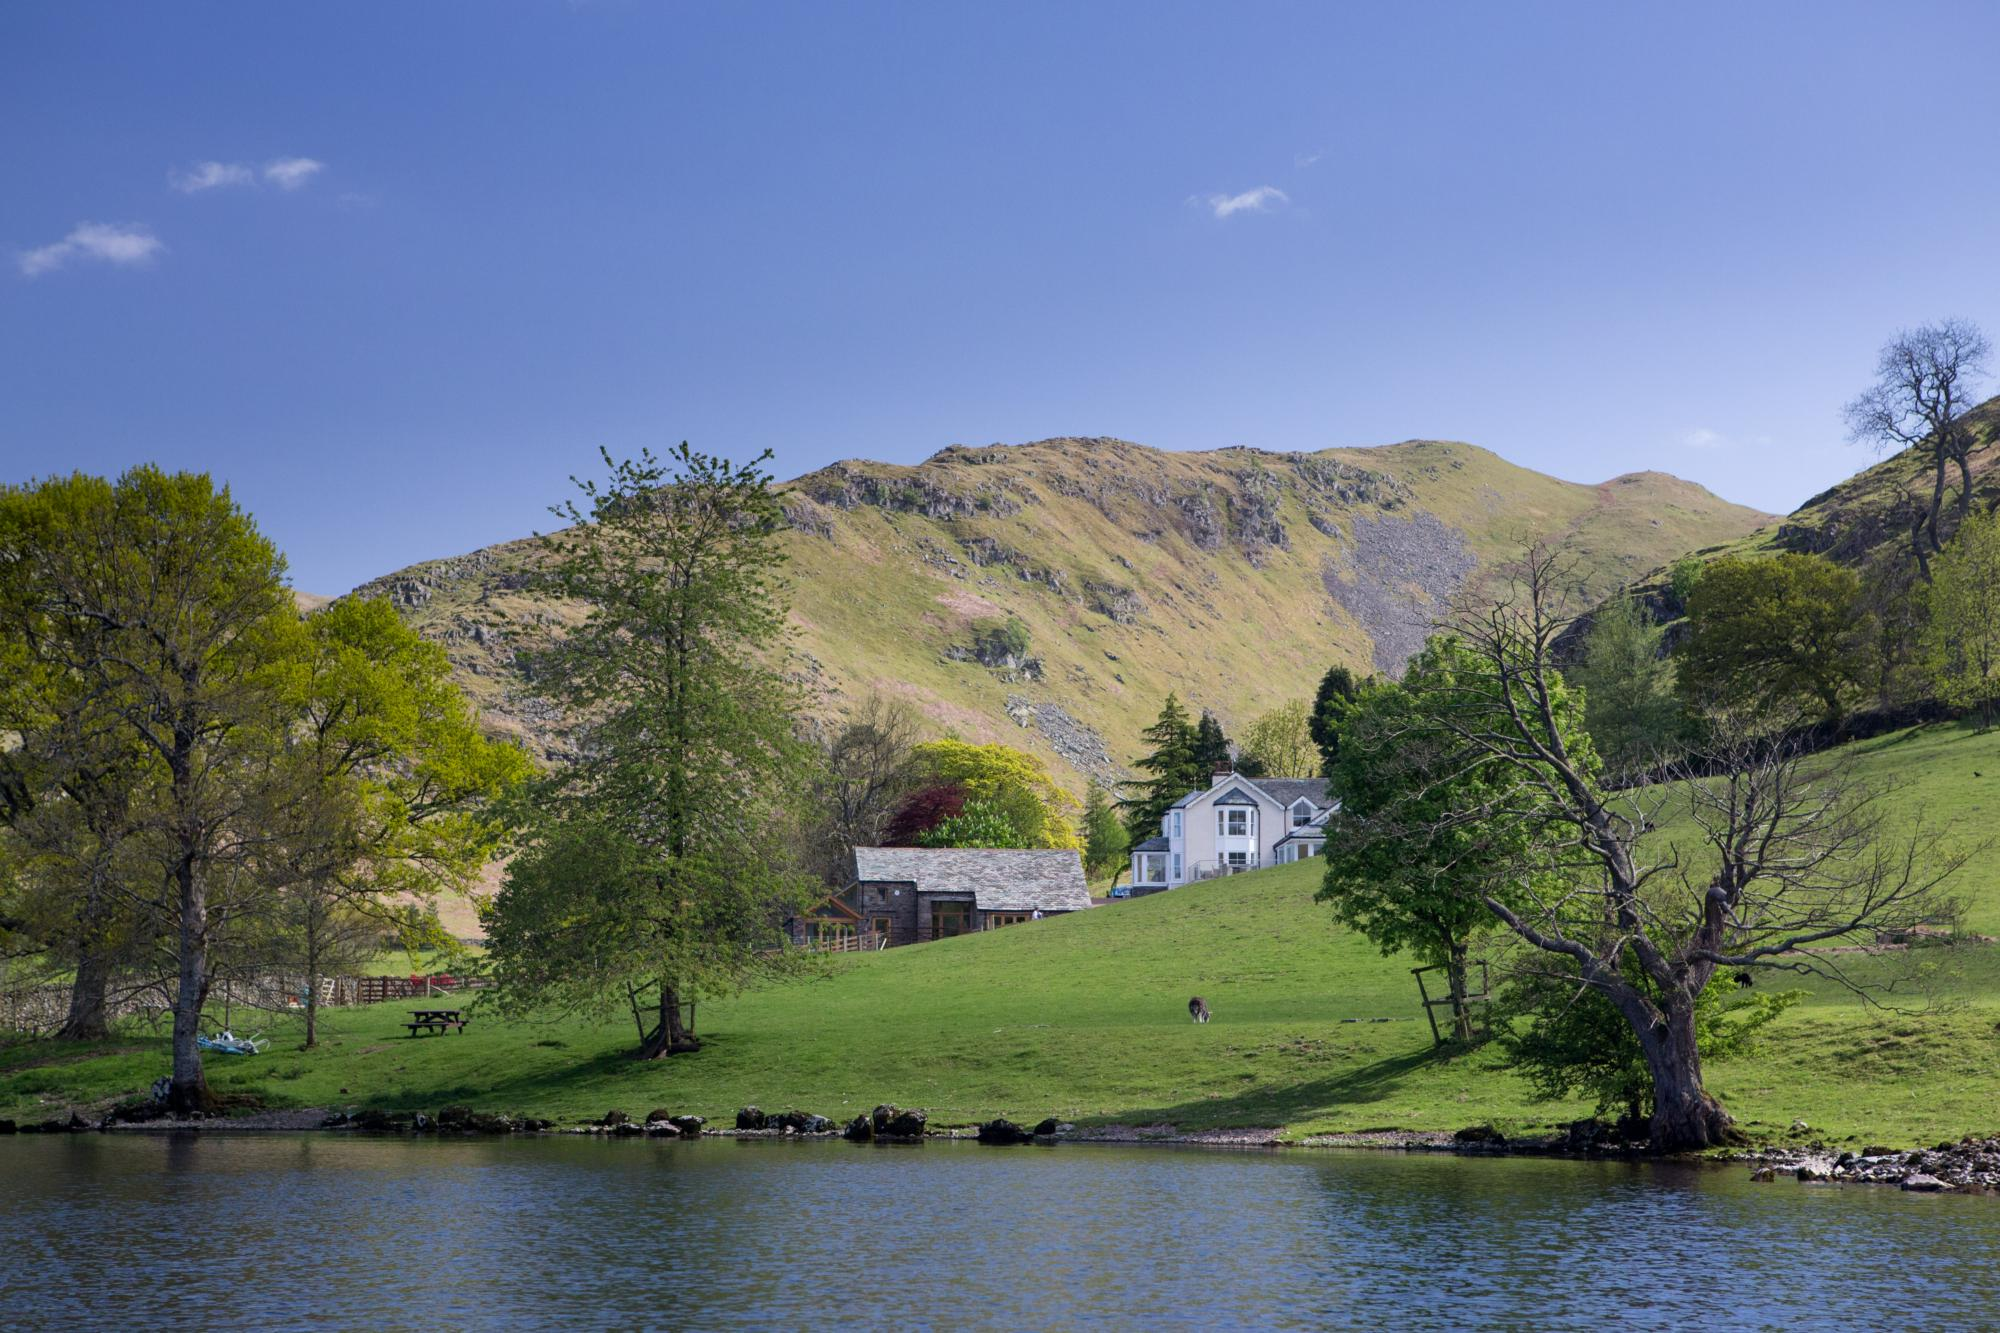 Contemporary UK hotels, B&Bs, holiday cottages and glamping - hot off the press!